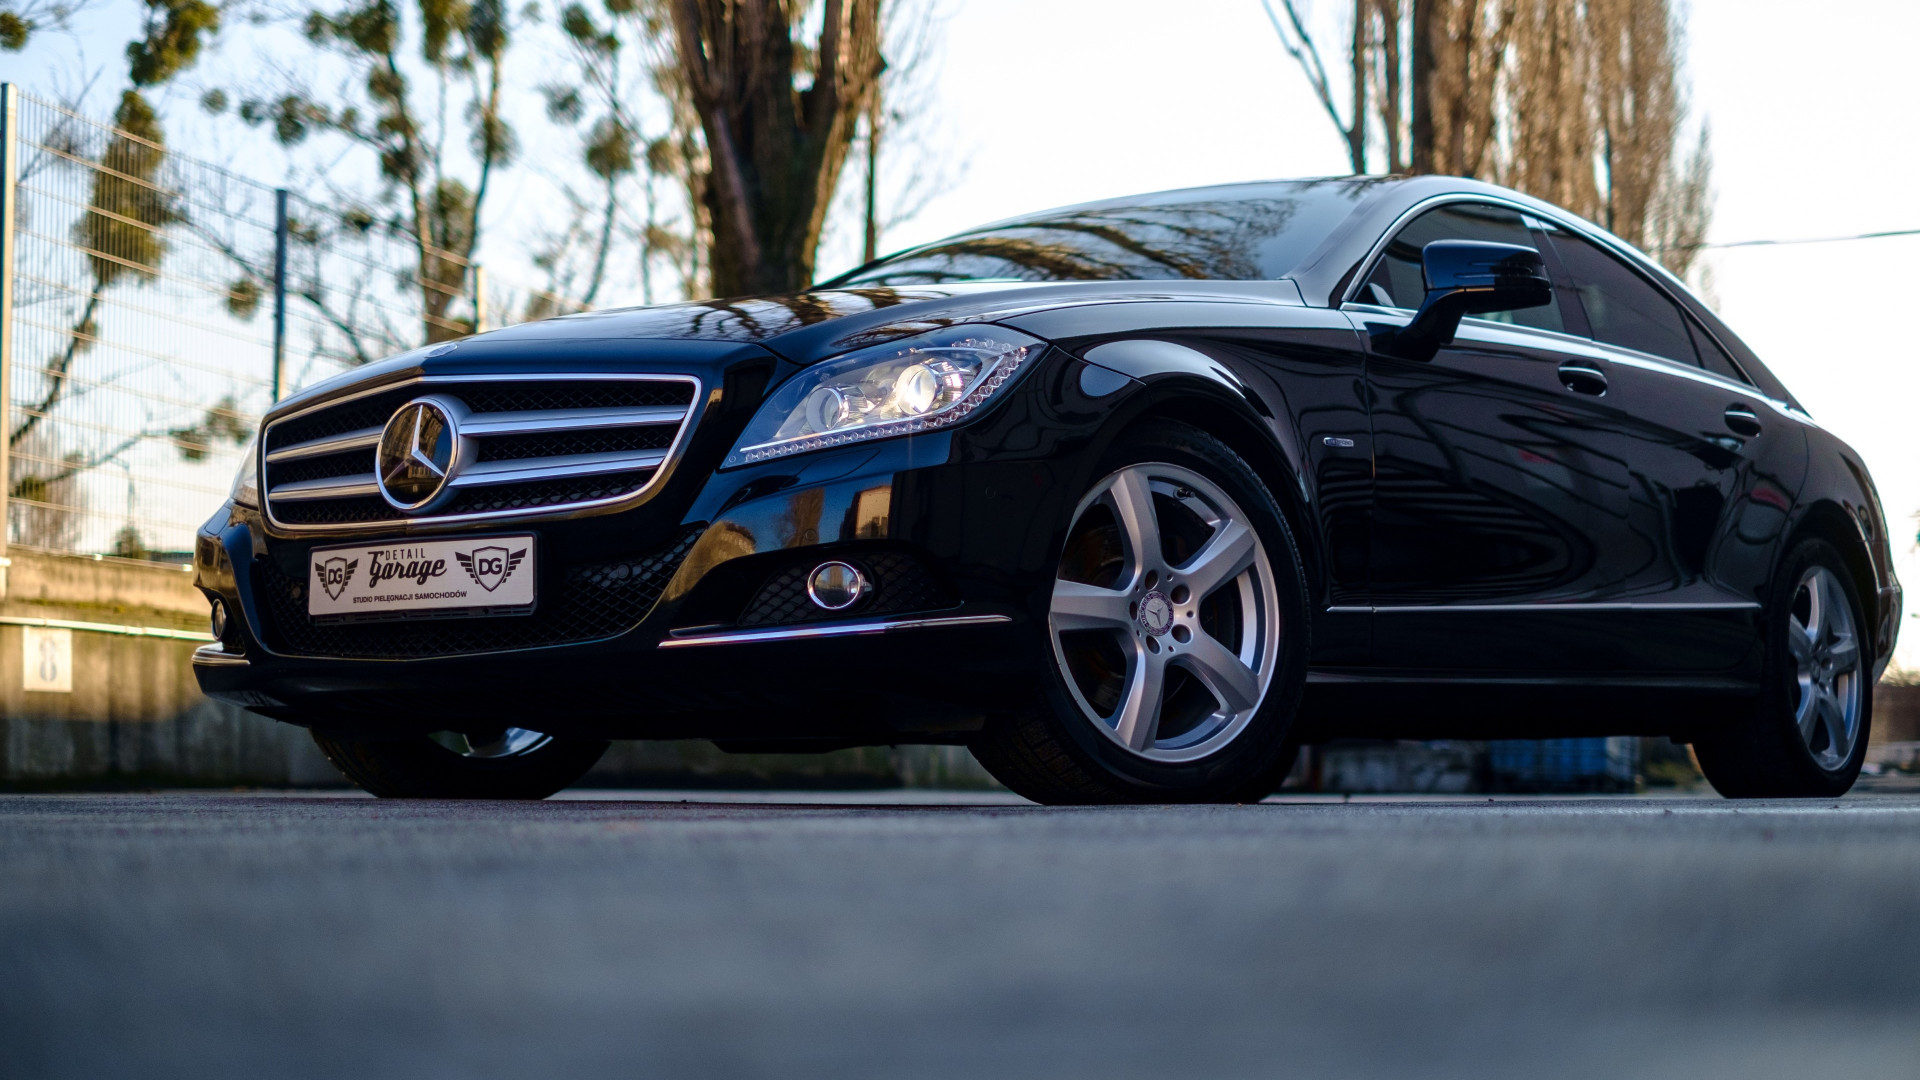 Mercedes Benz CLS wallpaper 1920x1080